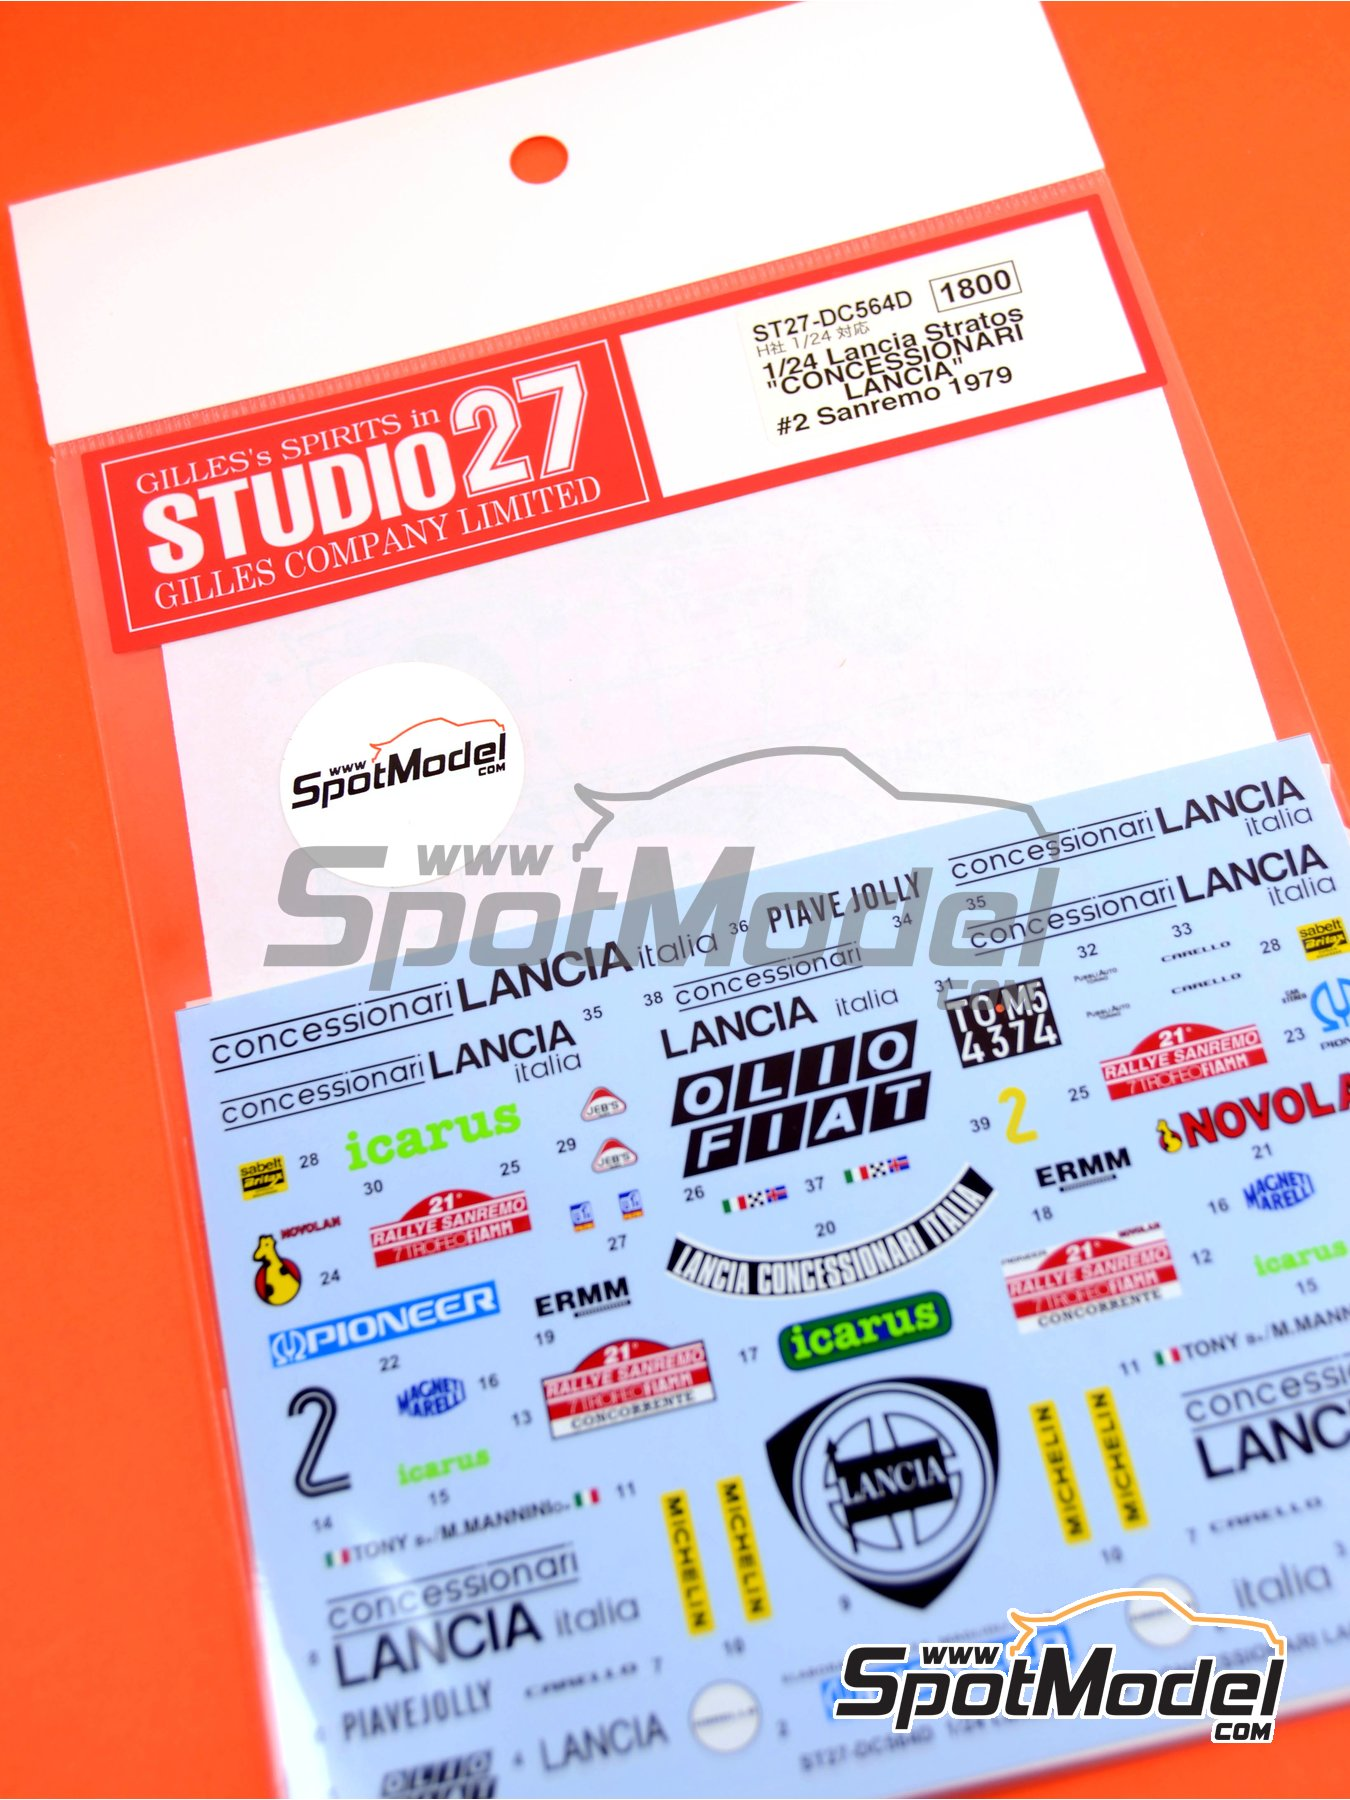 Lancia Stratos HF Concessionari Lancia - Sanremo Rally 1979 | Decals in 1/24 scale manufactured by Studio27 (ref.ST27-DC564D) image